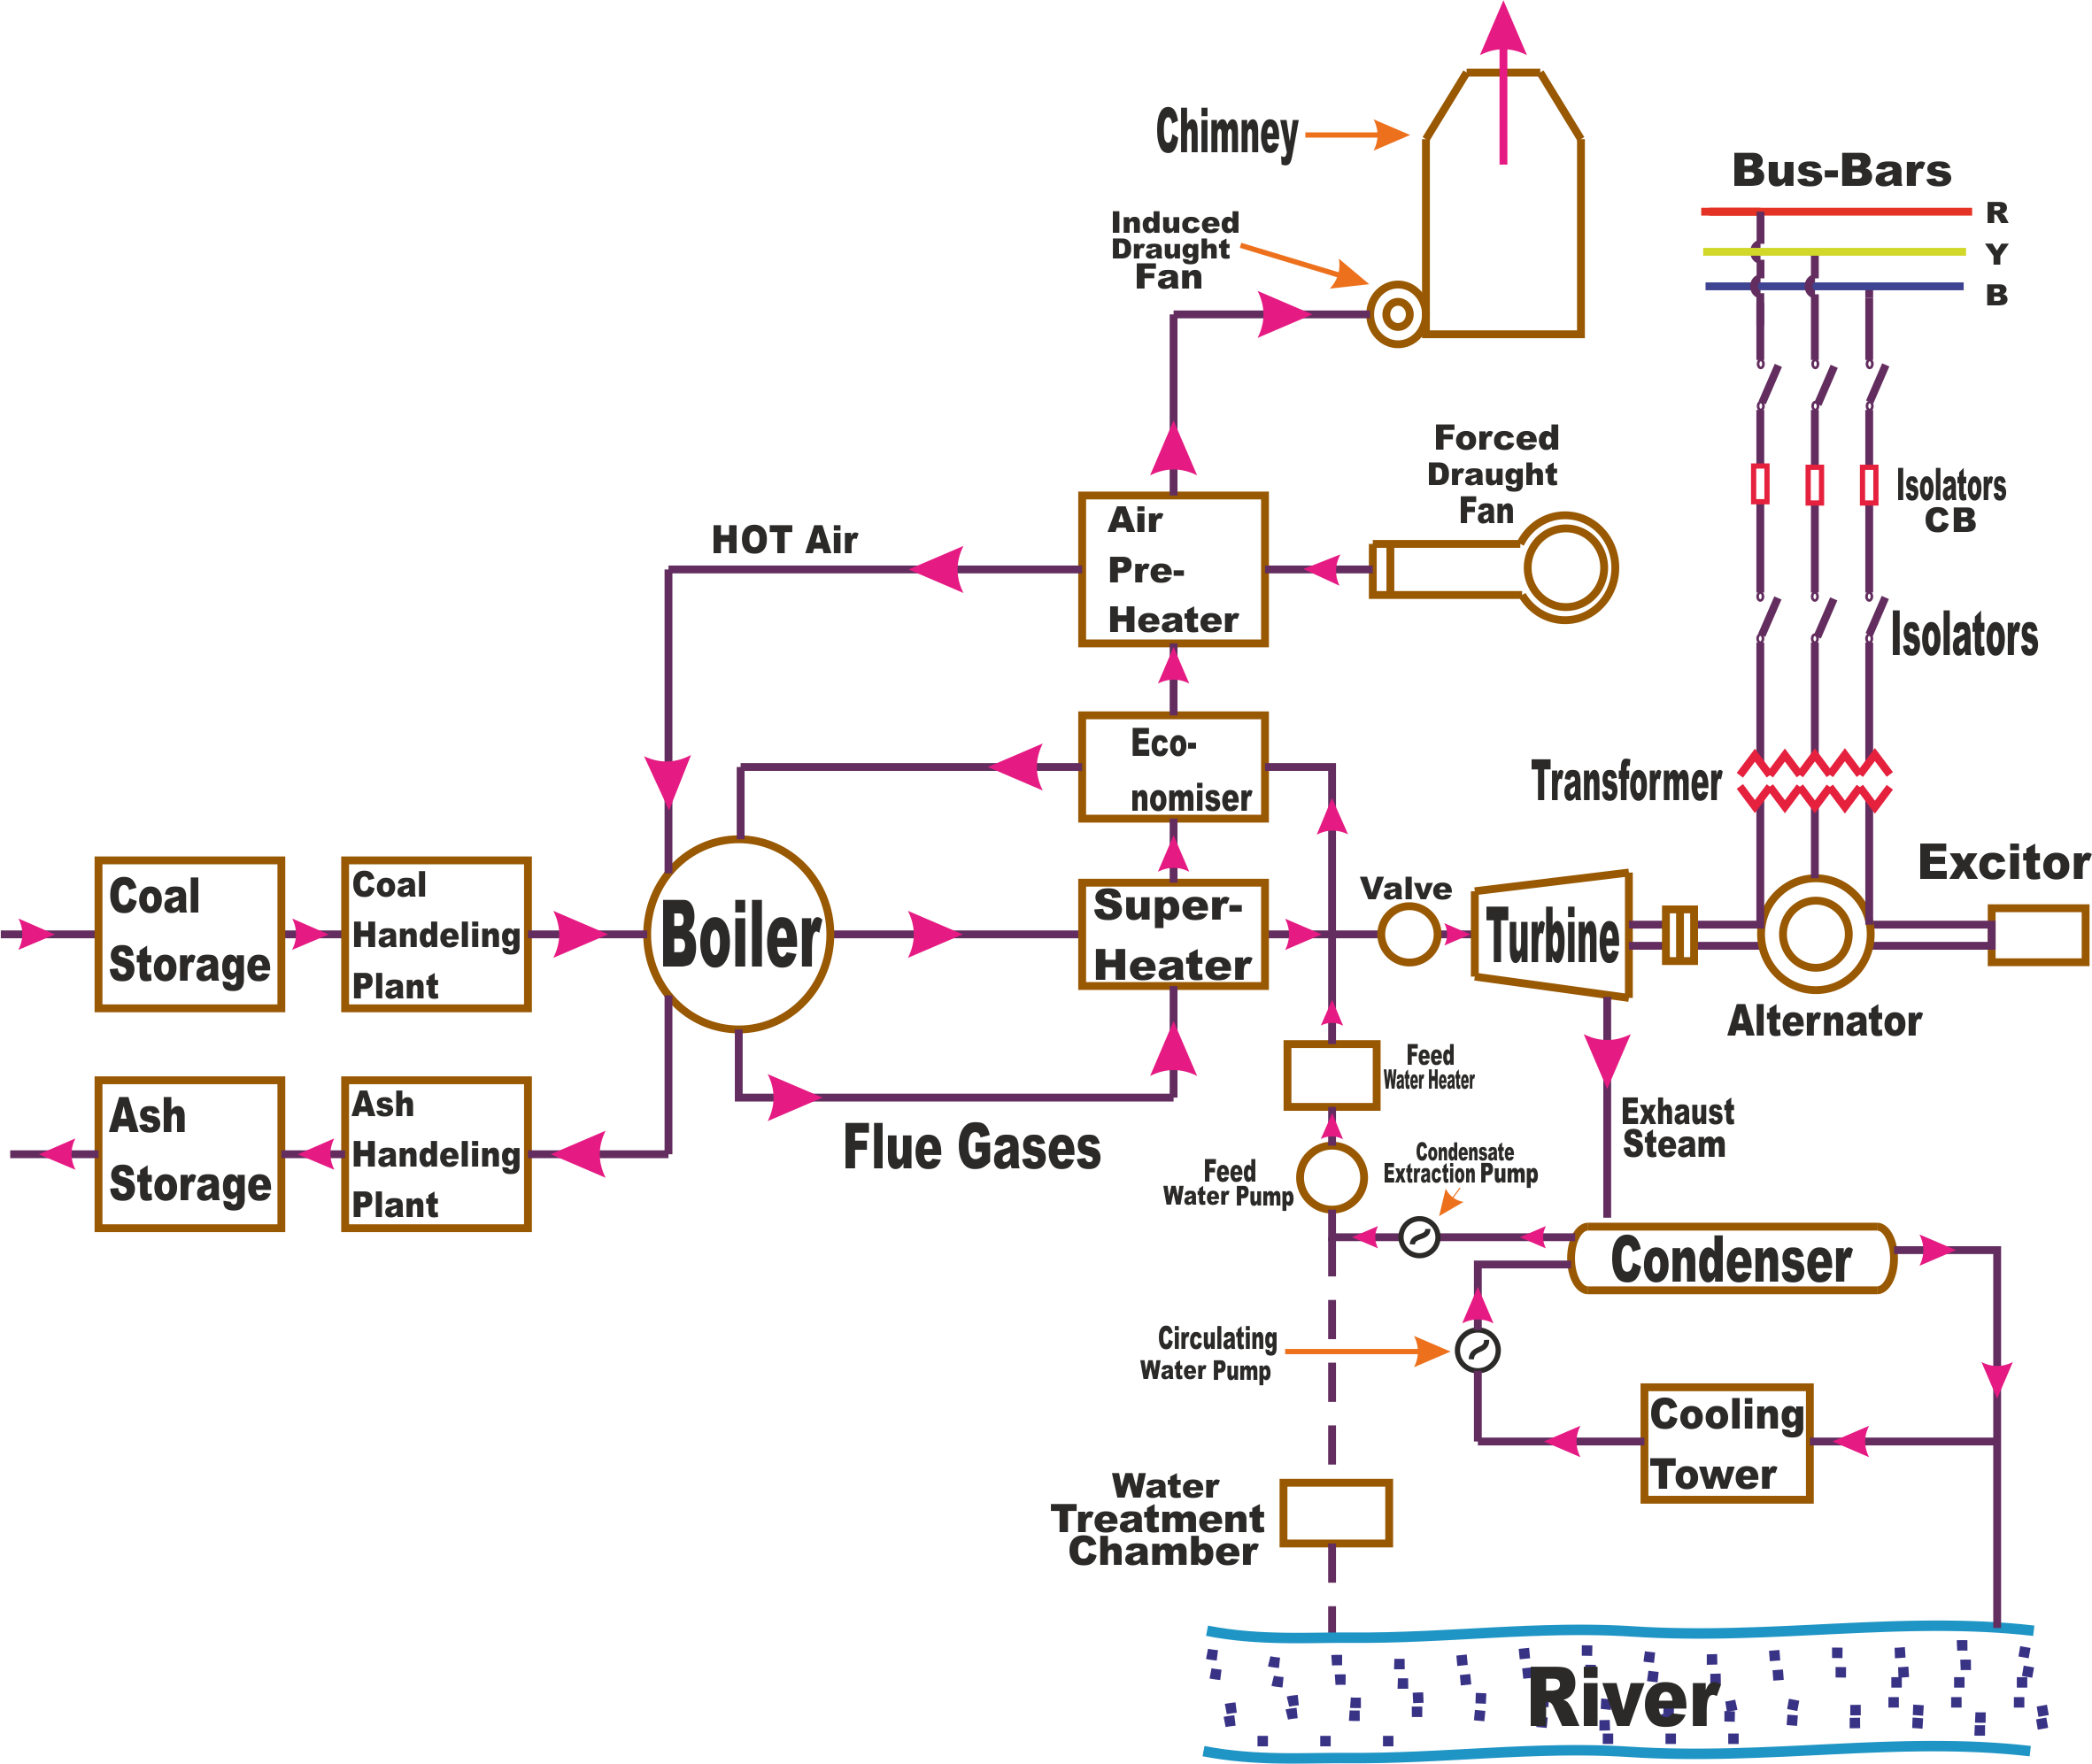 Thermal power plant thermal power plant operation Nuclear Power Plant Steam Power Plant Diagram Simple Power Plant Electrical Diagram on thermal power plant schematic diagram